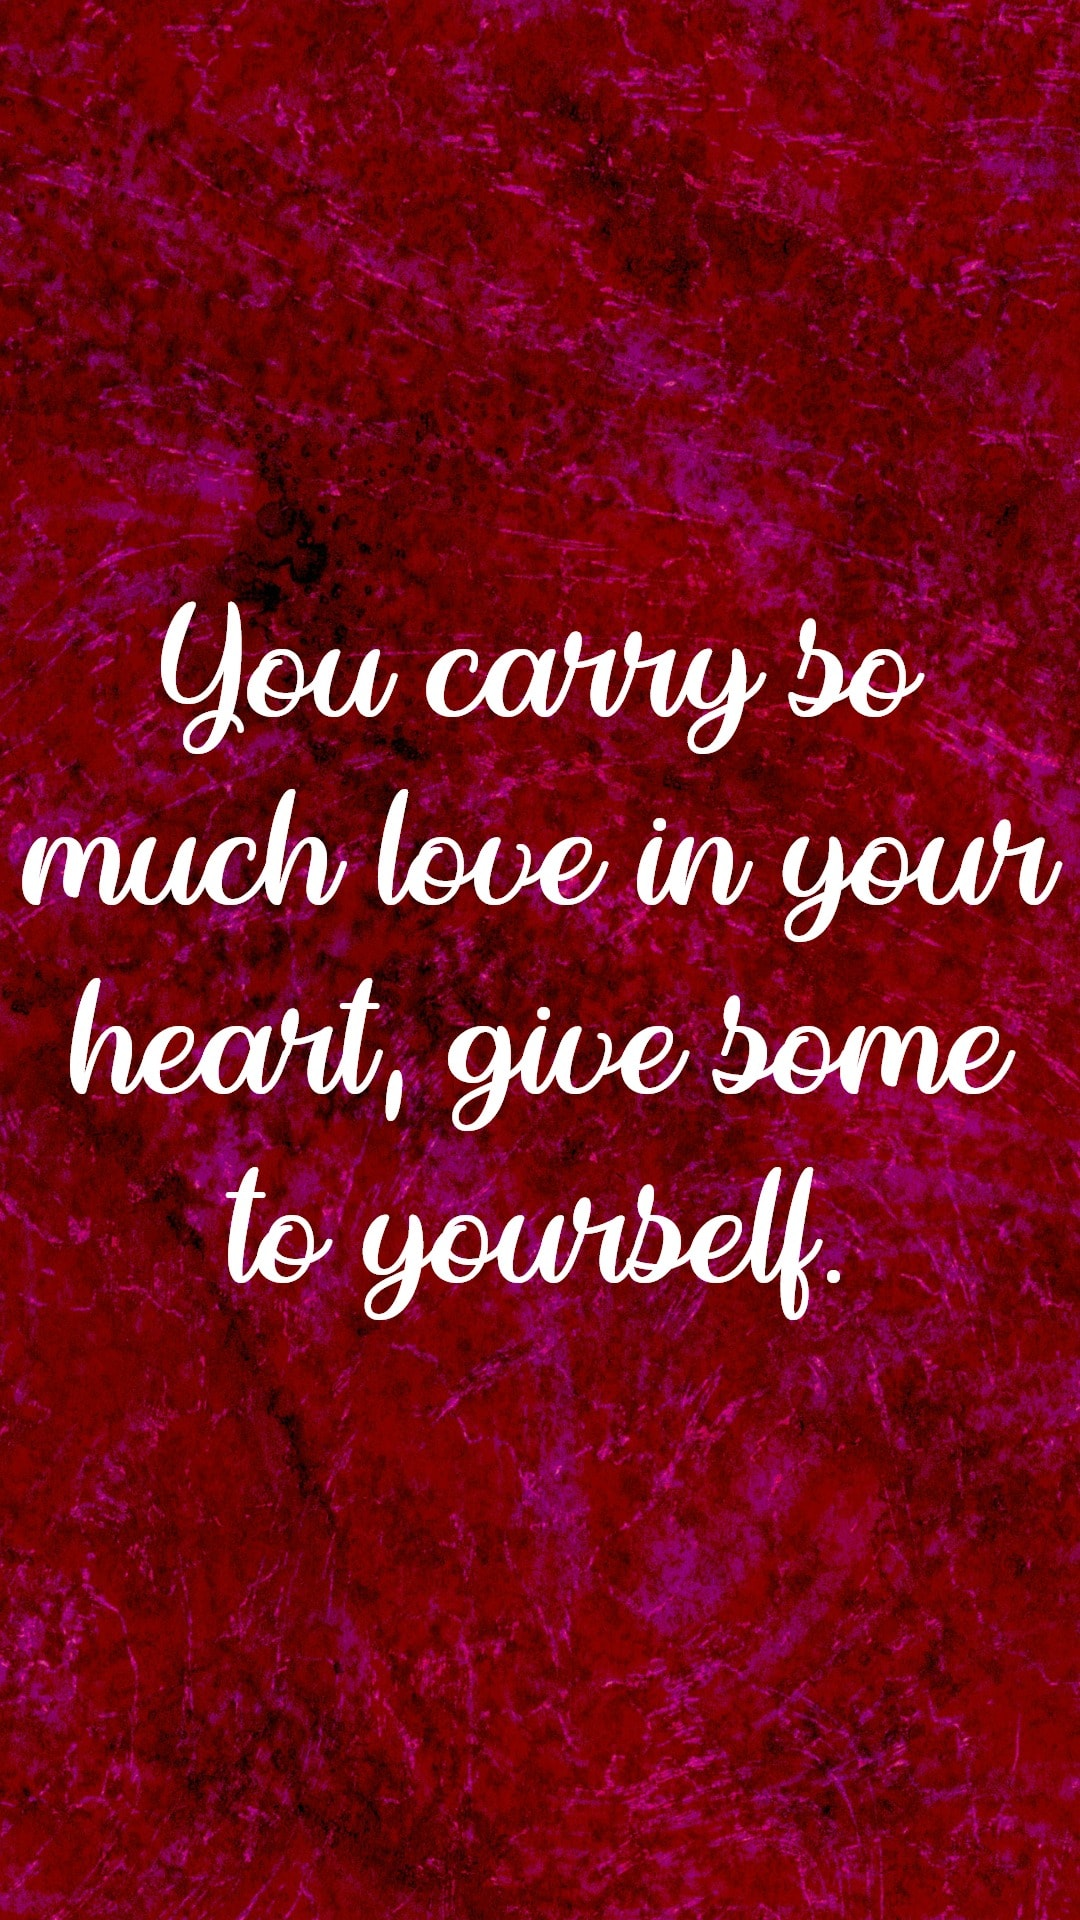 You carry so much love in your heart, give some to yourself.